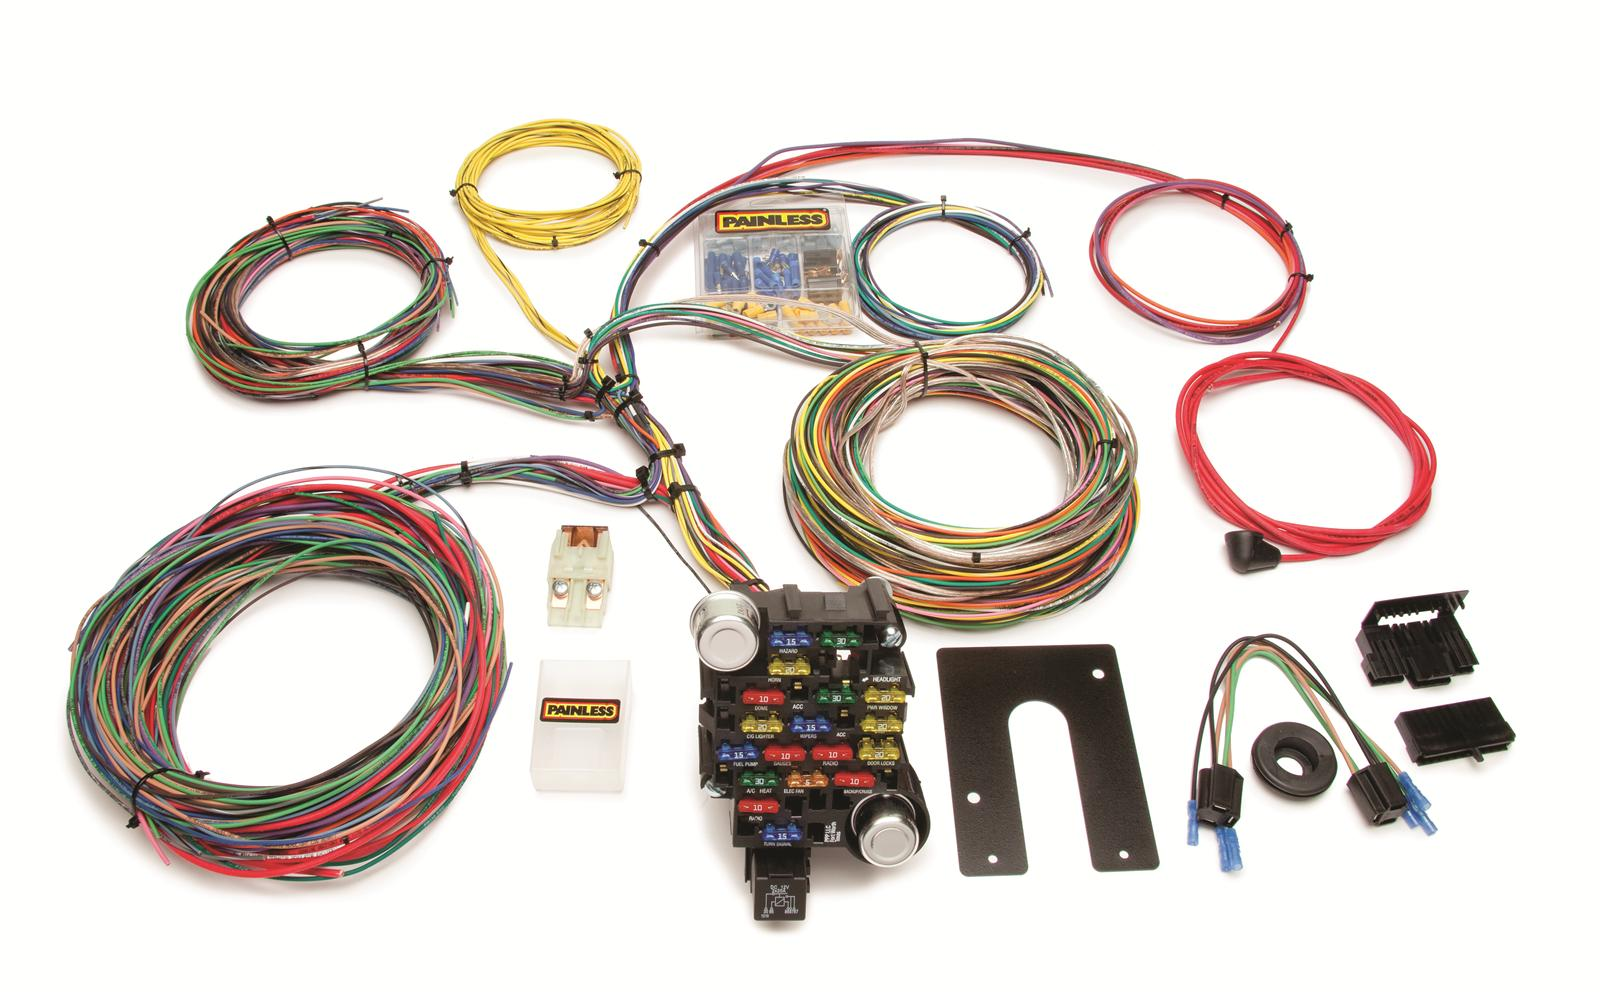 painless performance 28 circuit universal harnesses 10202 free rh summitracing com Painless Wiring for Old Cars and Trucks Painless GM Column Wiring Diagram